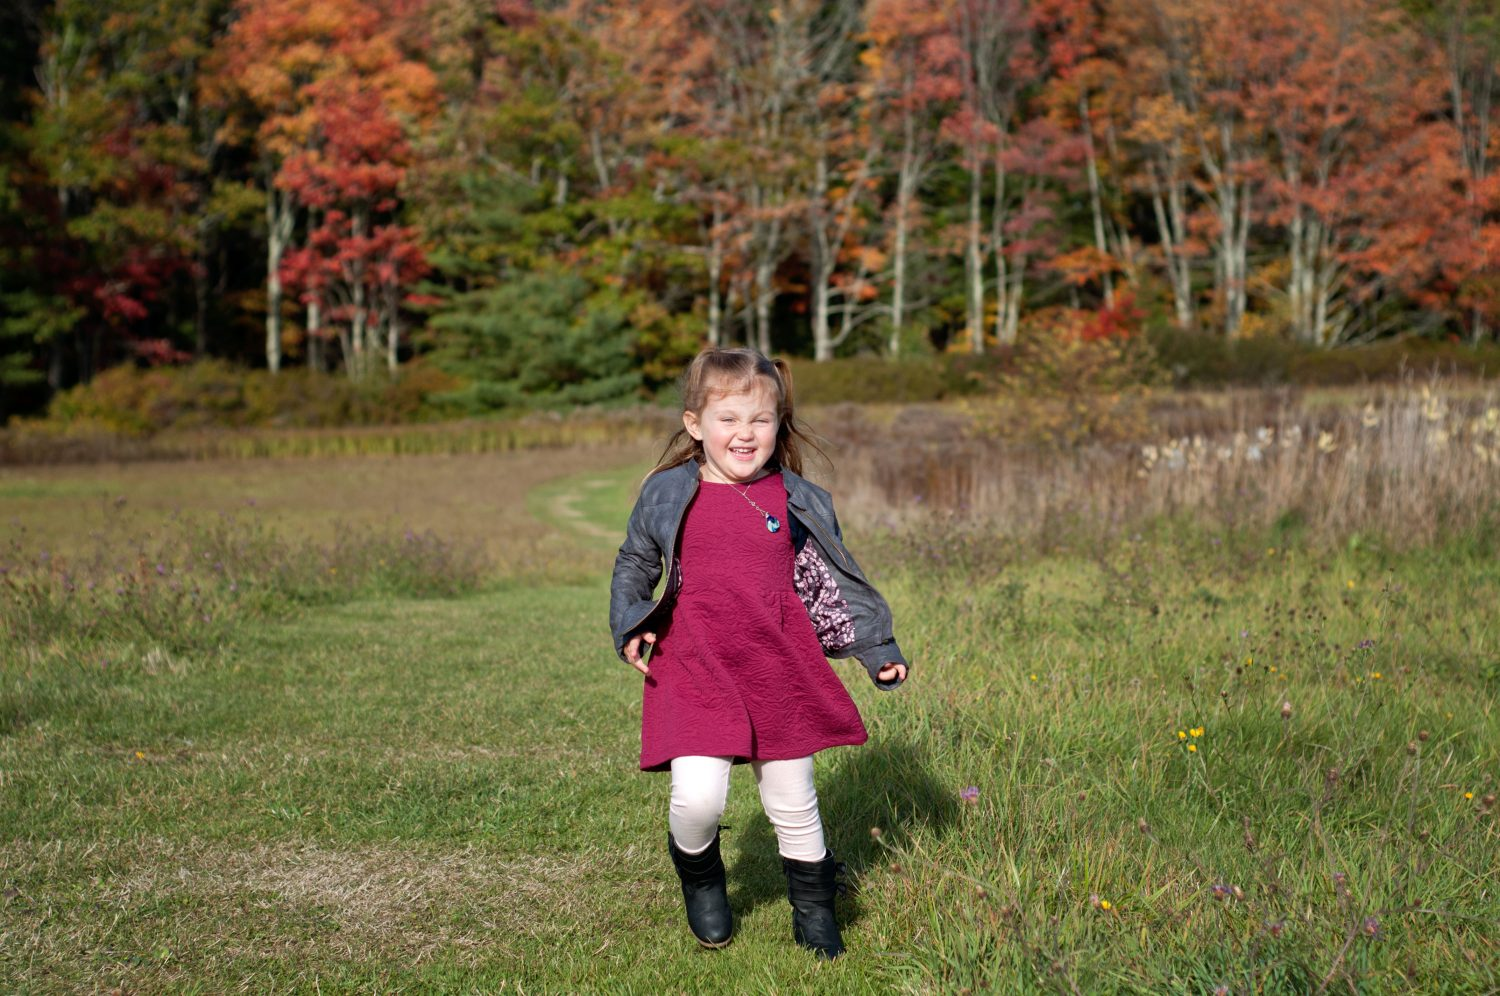 little girl running in a field with fall colors